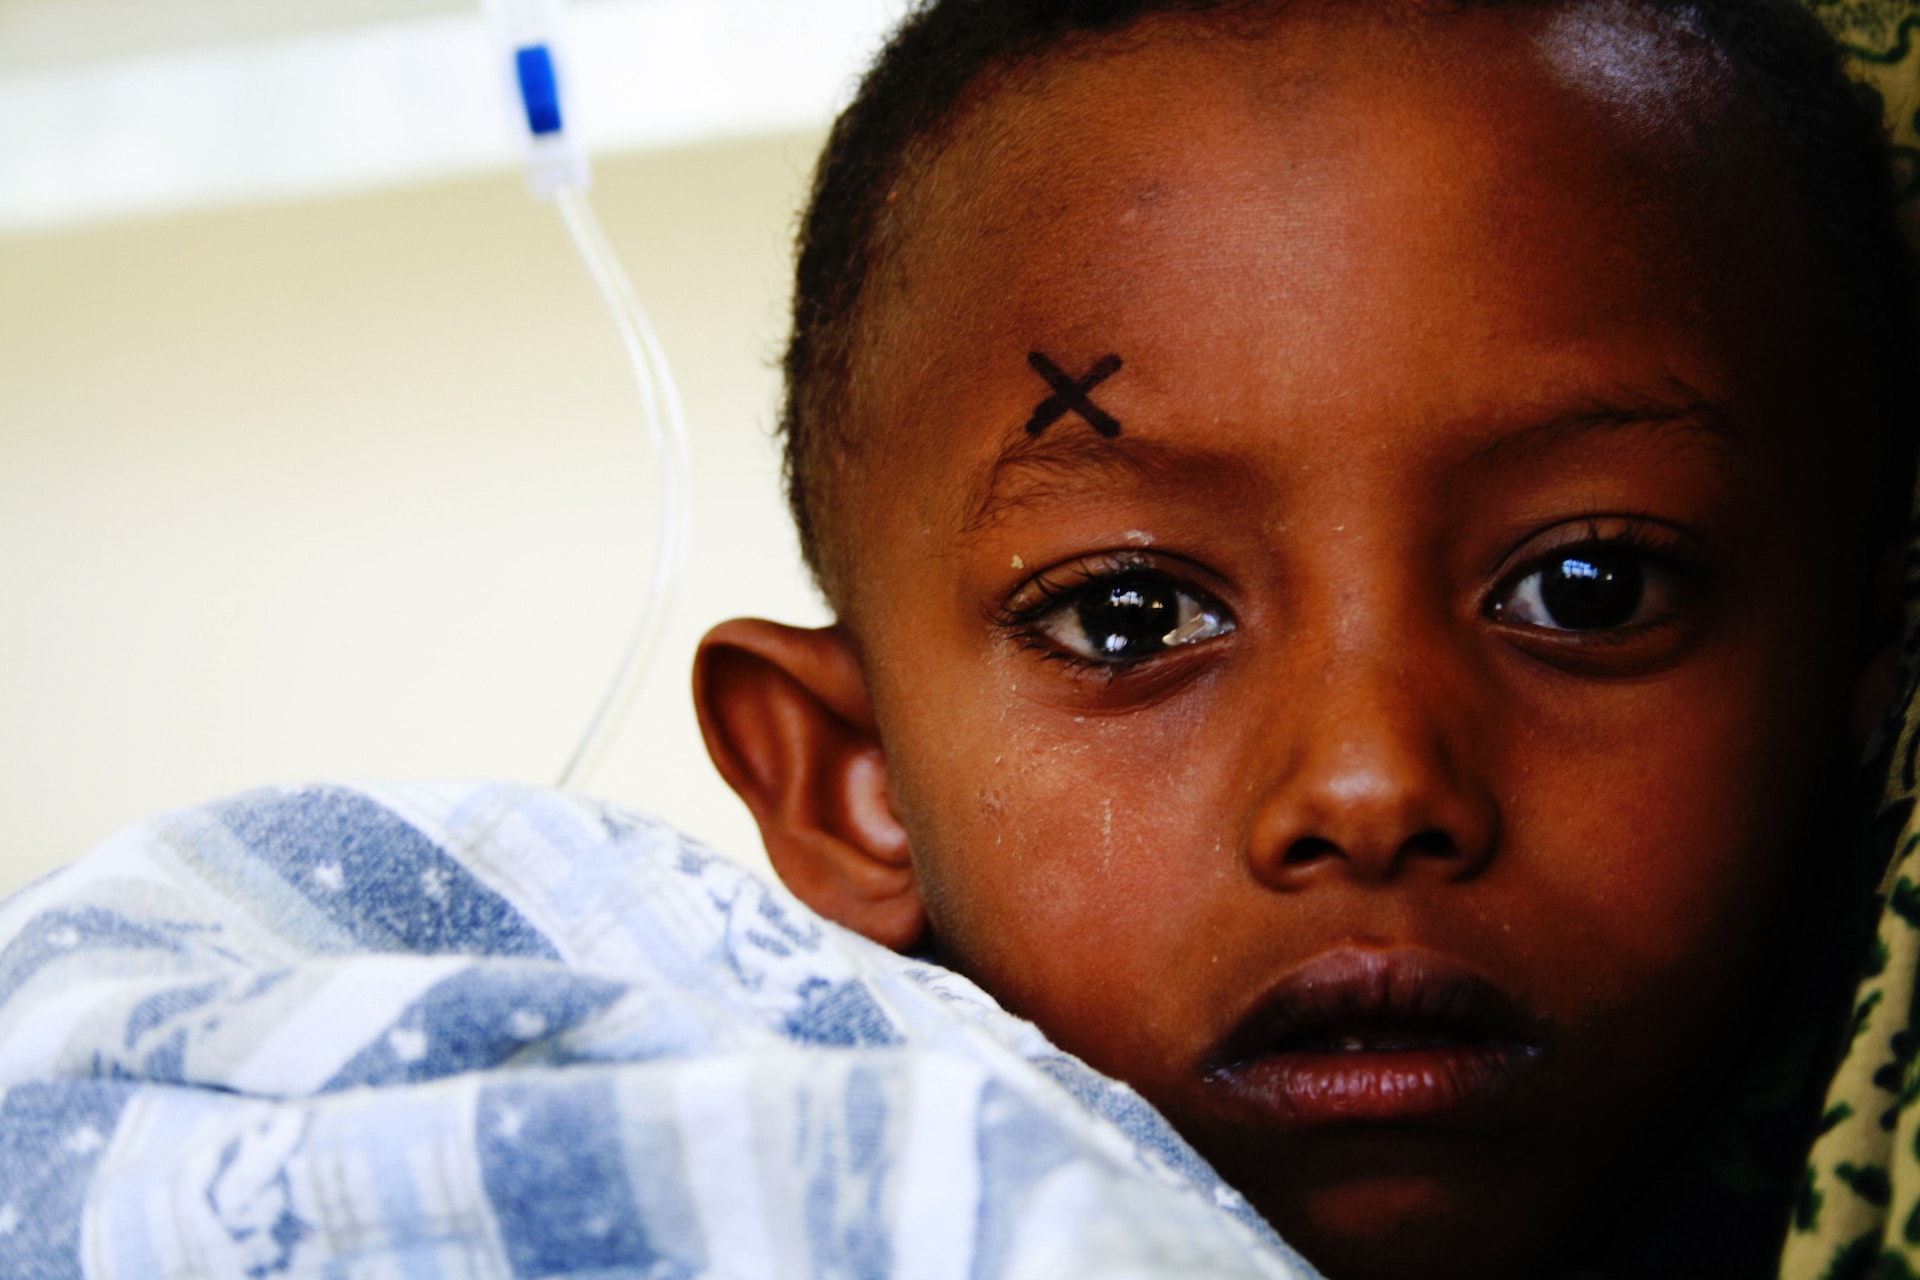 Celia's photo of a child patient in Ethiopia